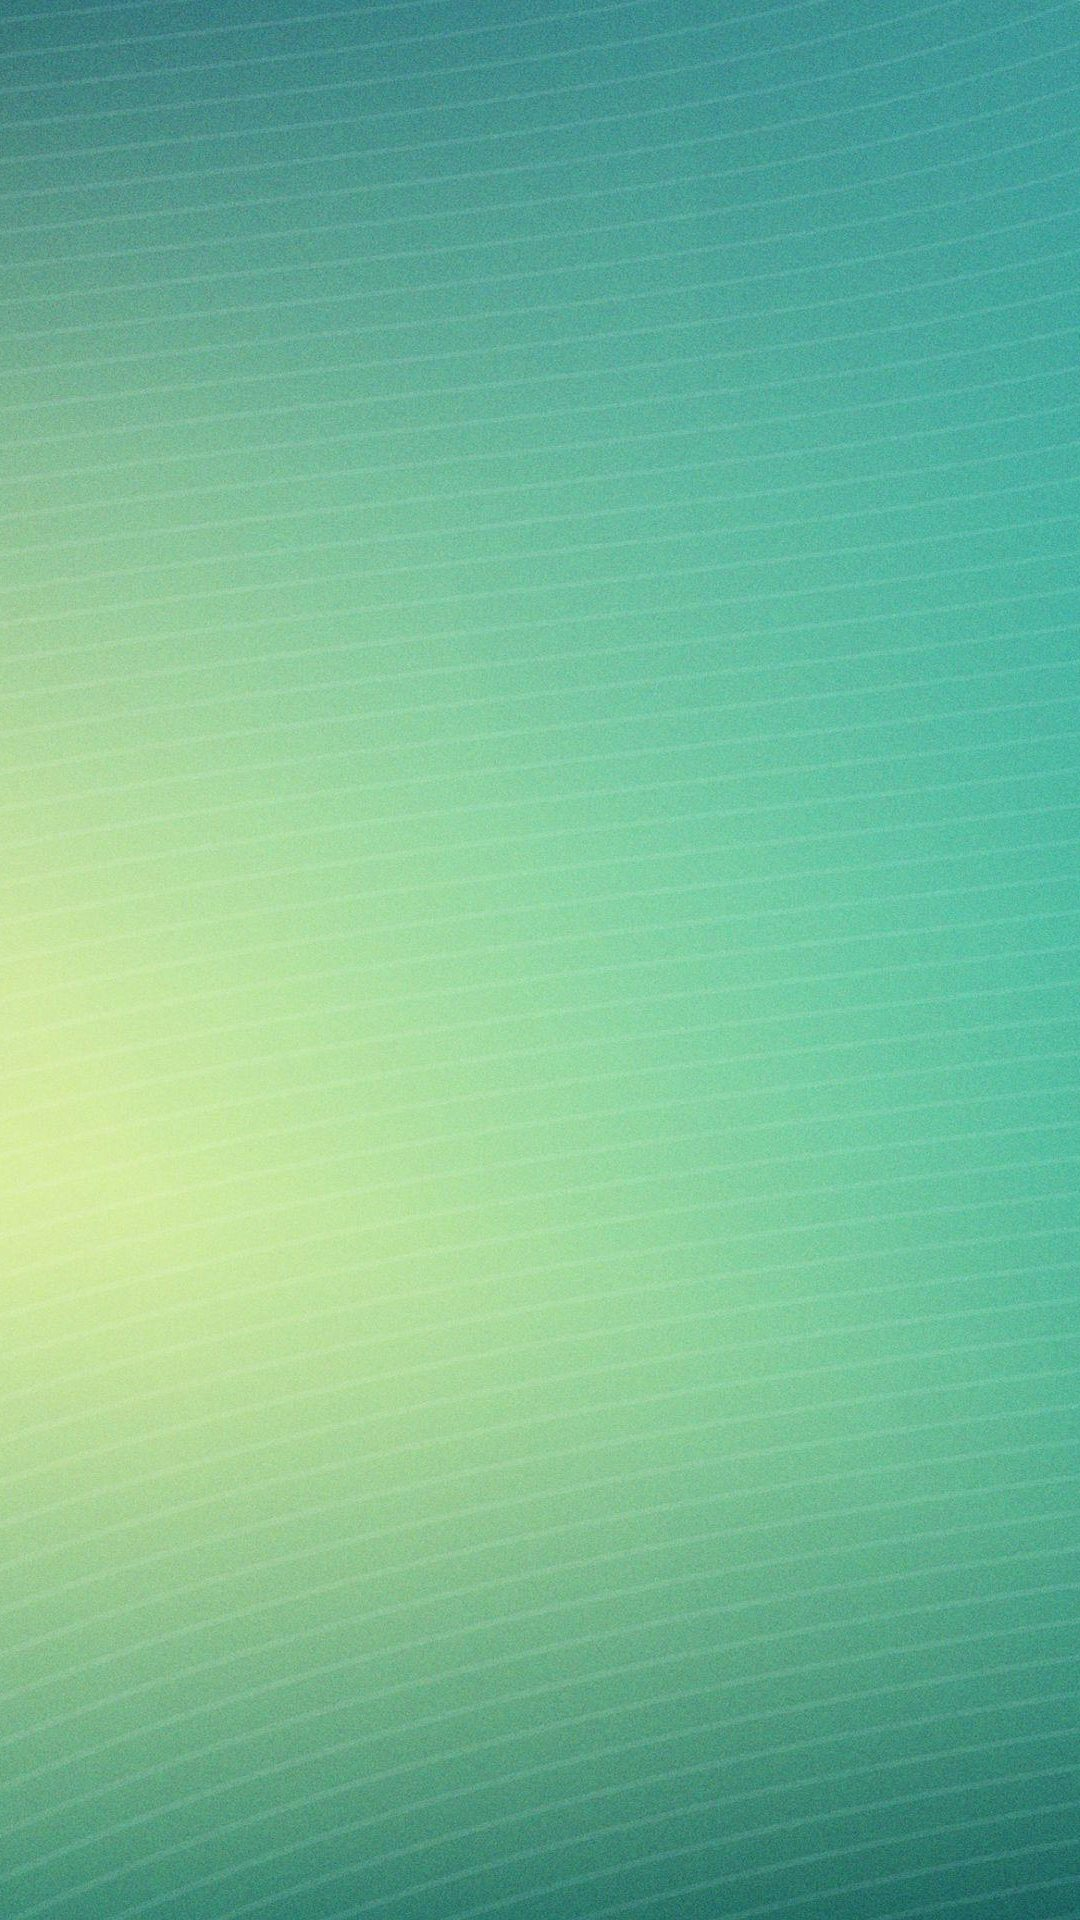 Breaking Bad Wallpaper Iphone X Green Glow Pattern Best Htc One Wallpapers Free And